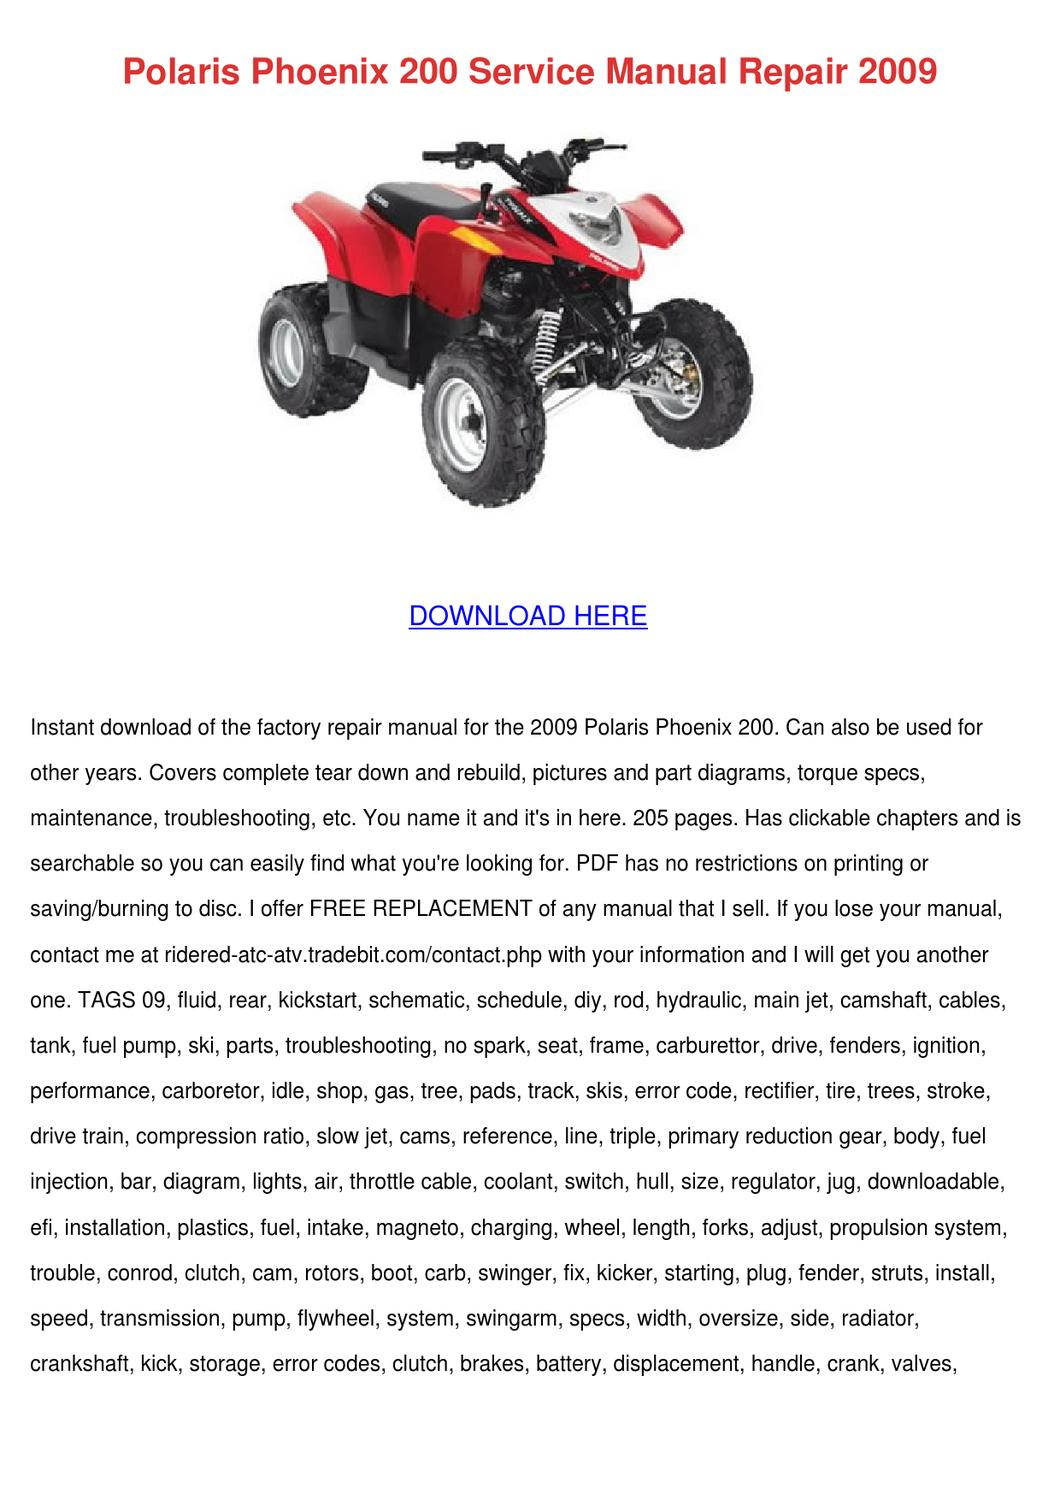 Polaris Phoenix 200 Service Manual Repair 200 by Ethelyn Hrycenko